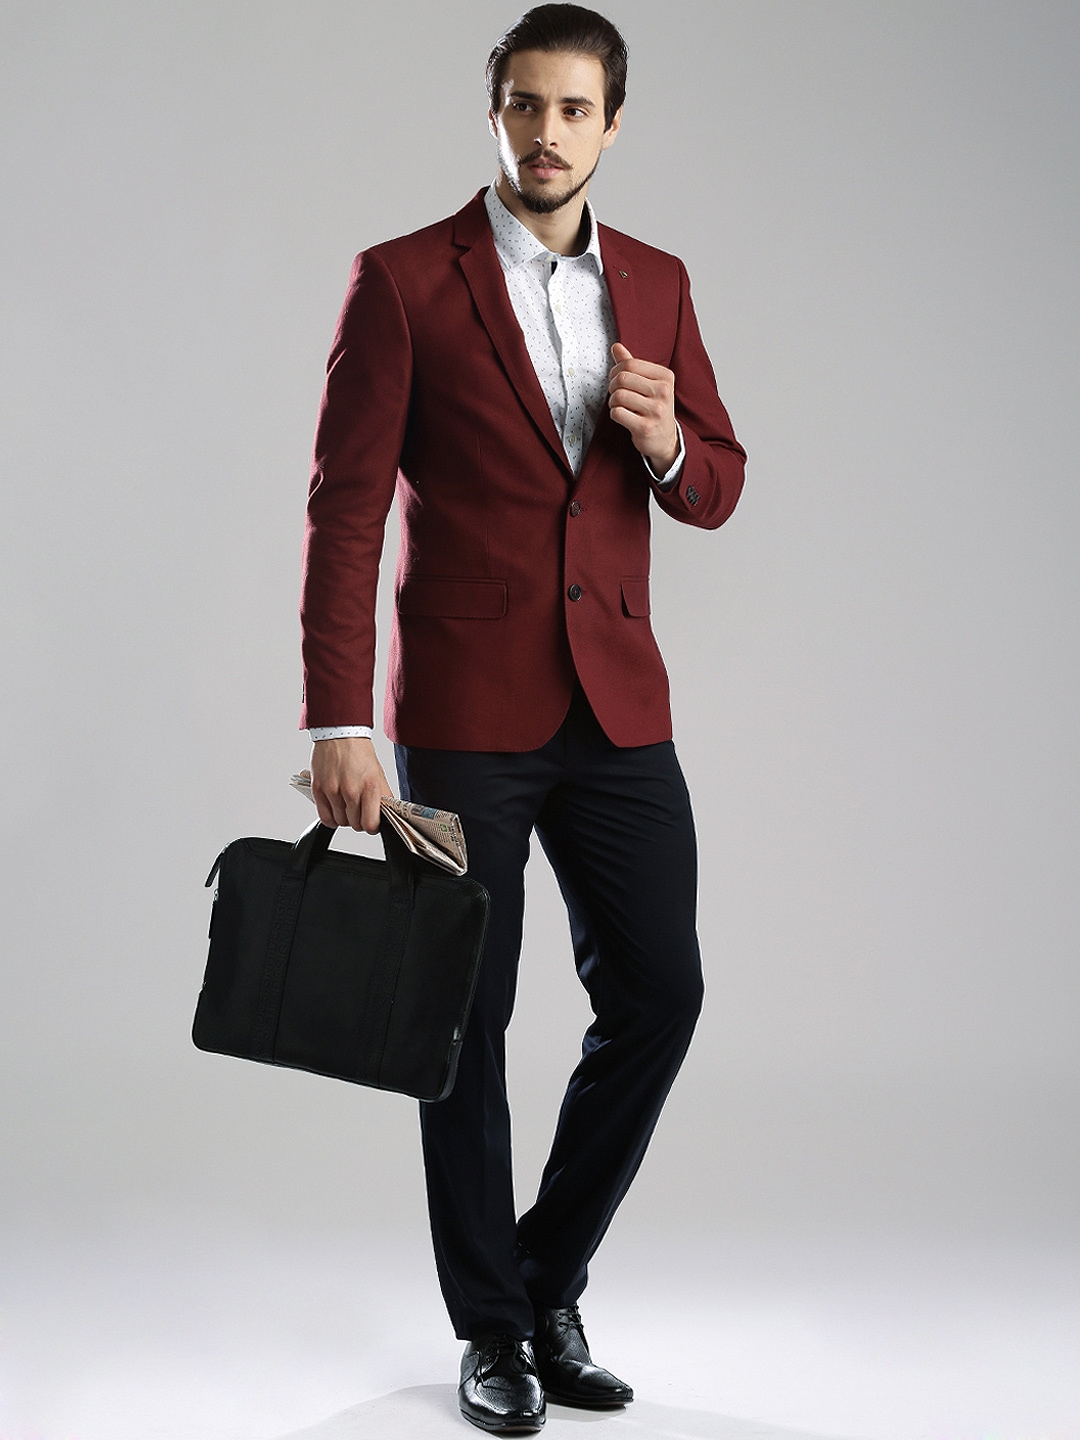 Collection Mens Maroon Blazer Pictures - Reikian